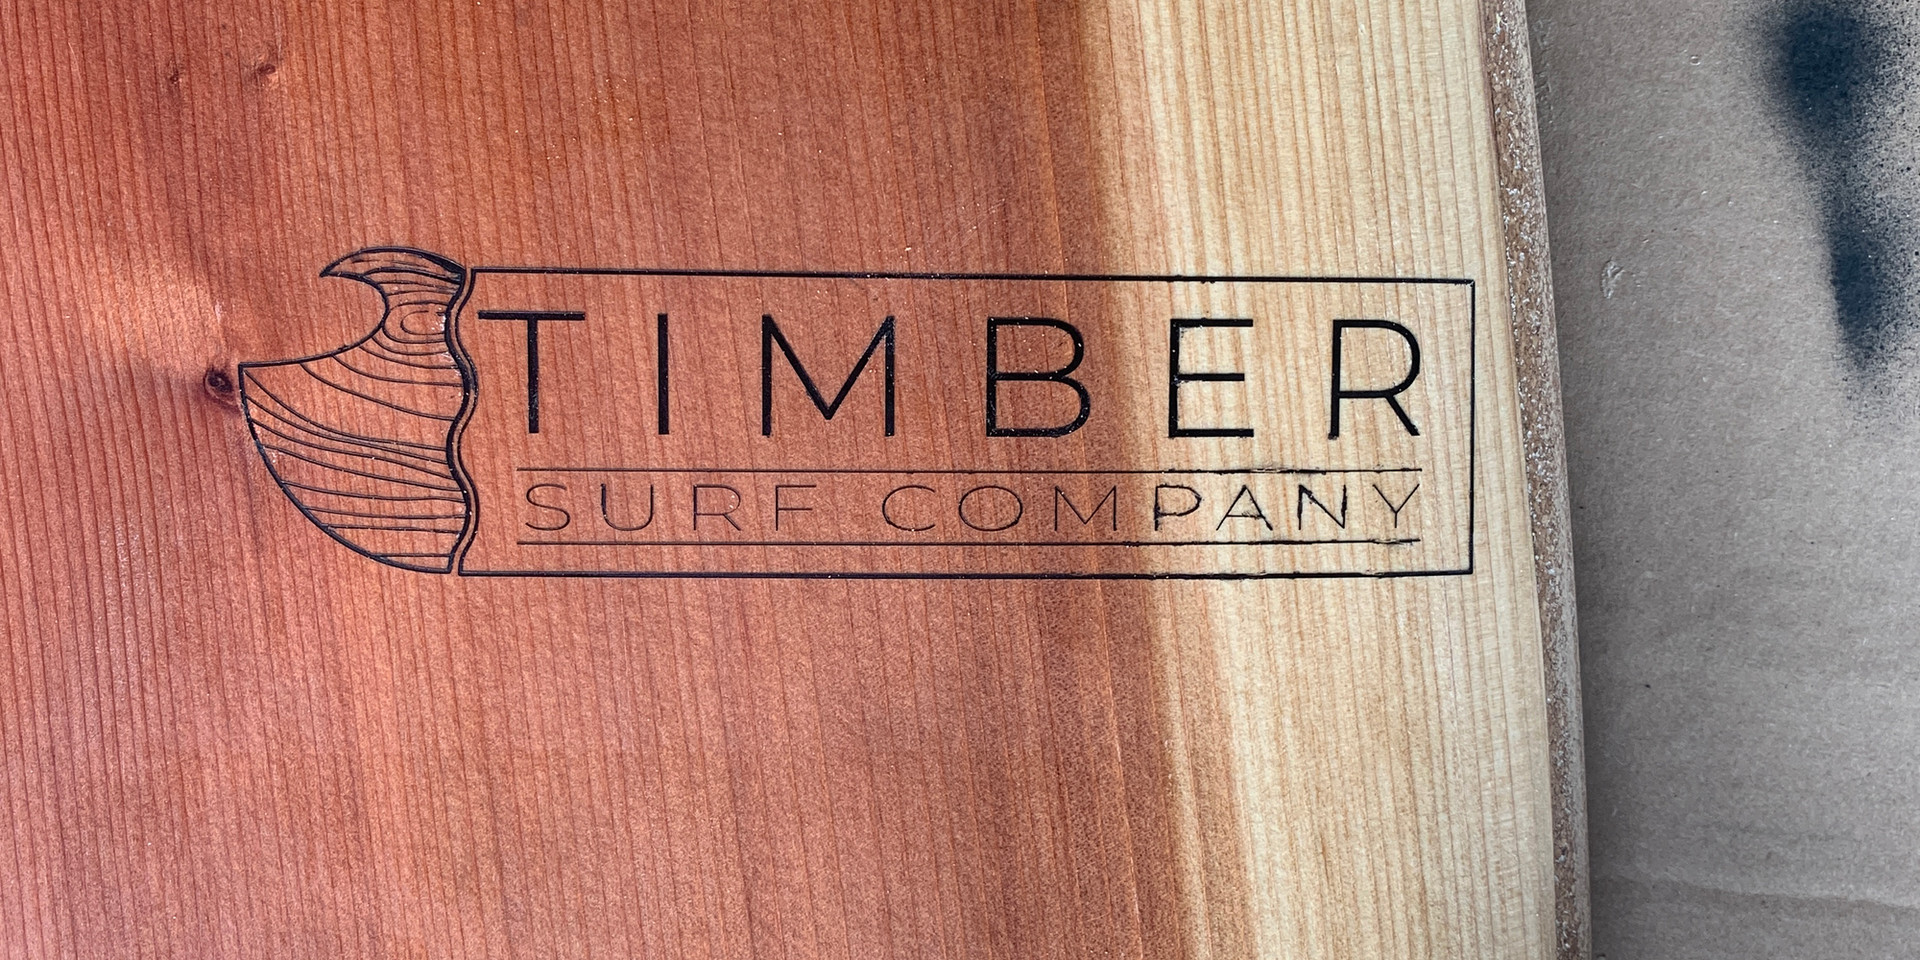 Timber Surf Company | Splinter Series Wooden Surfboard | Santa Cruz, CA